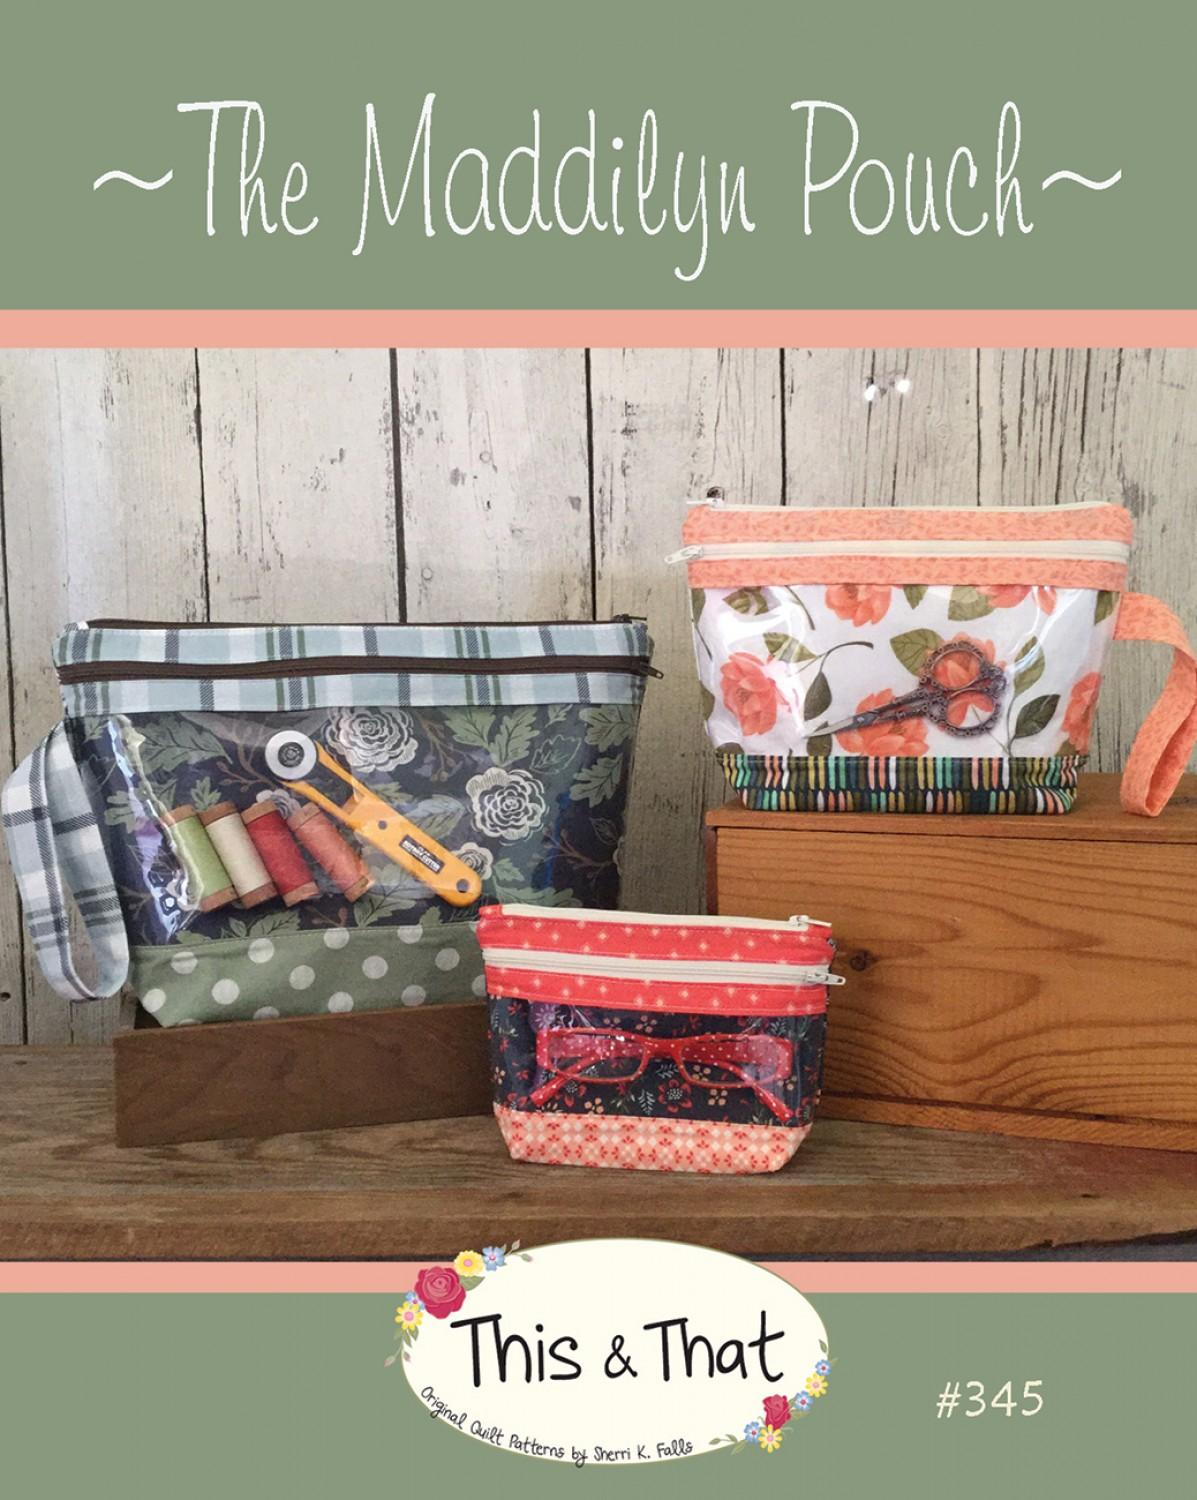 The Maddilyn Pouch